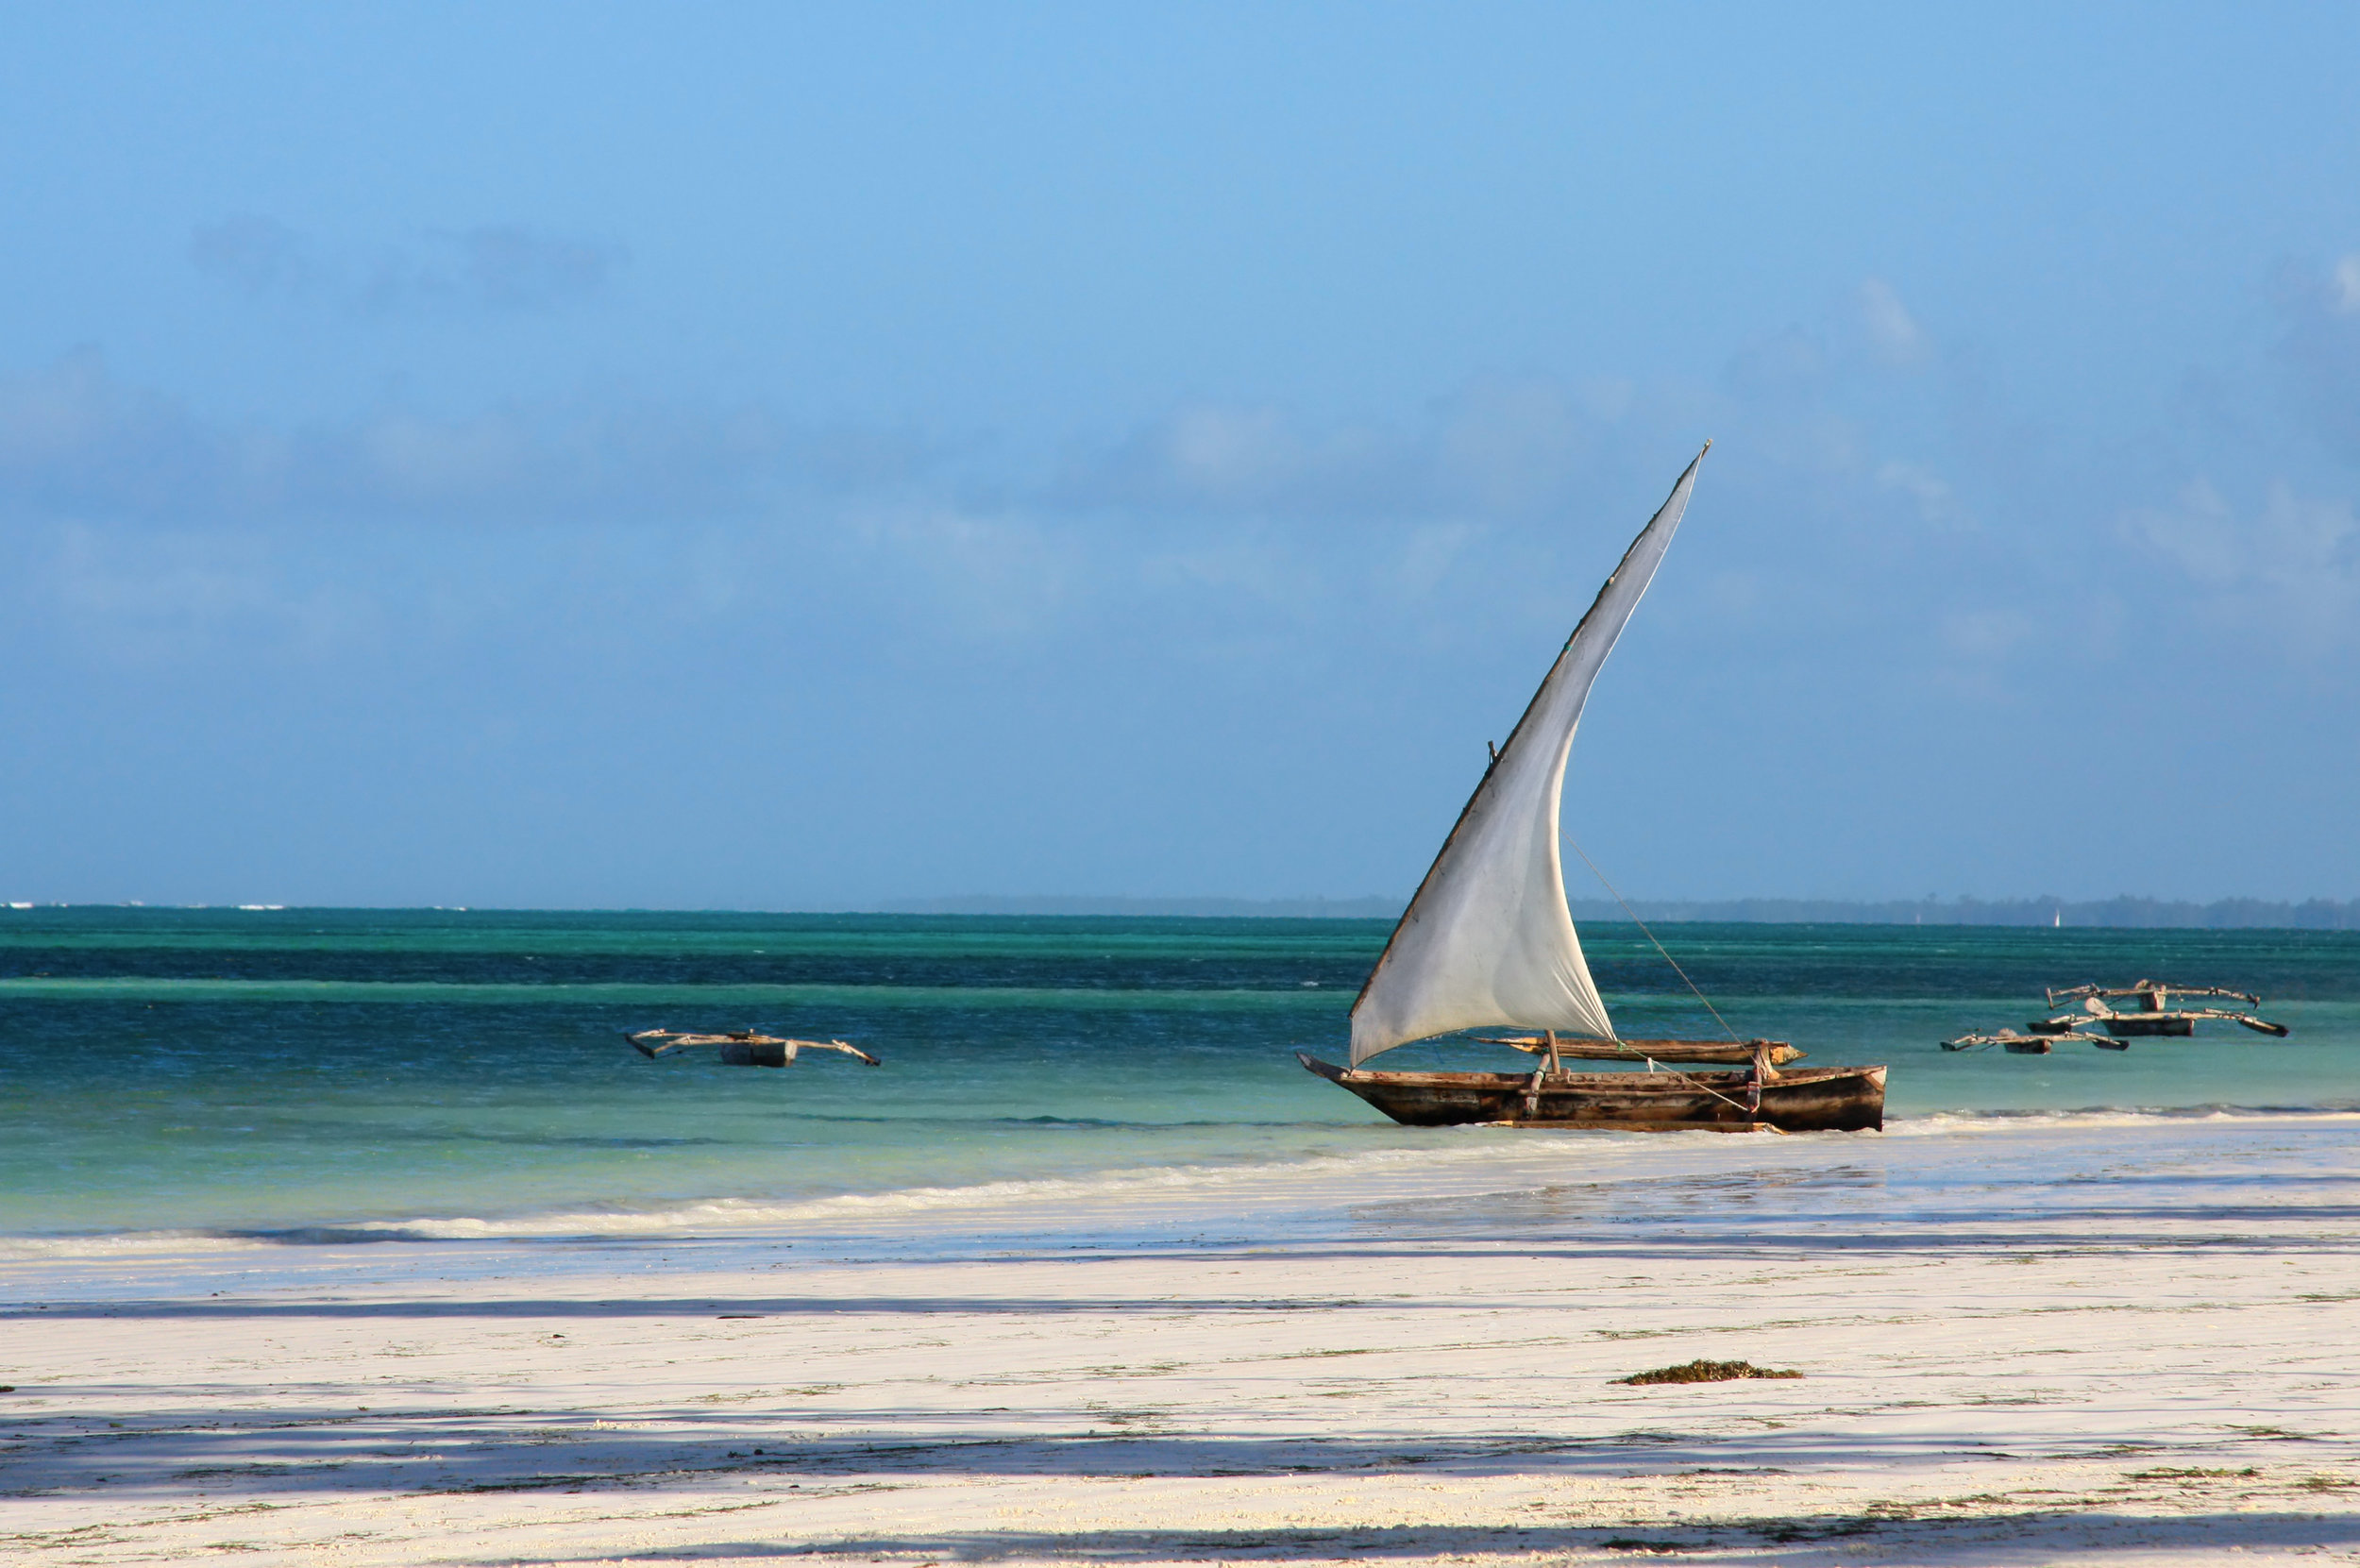 traditional central African fisherman sailboat on beach